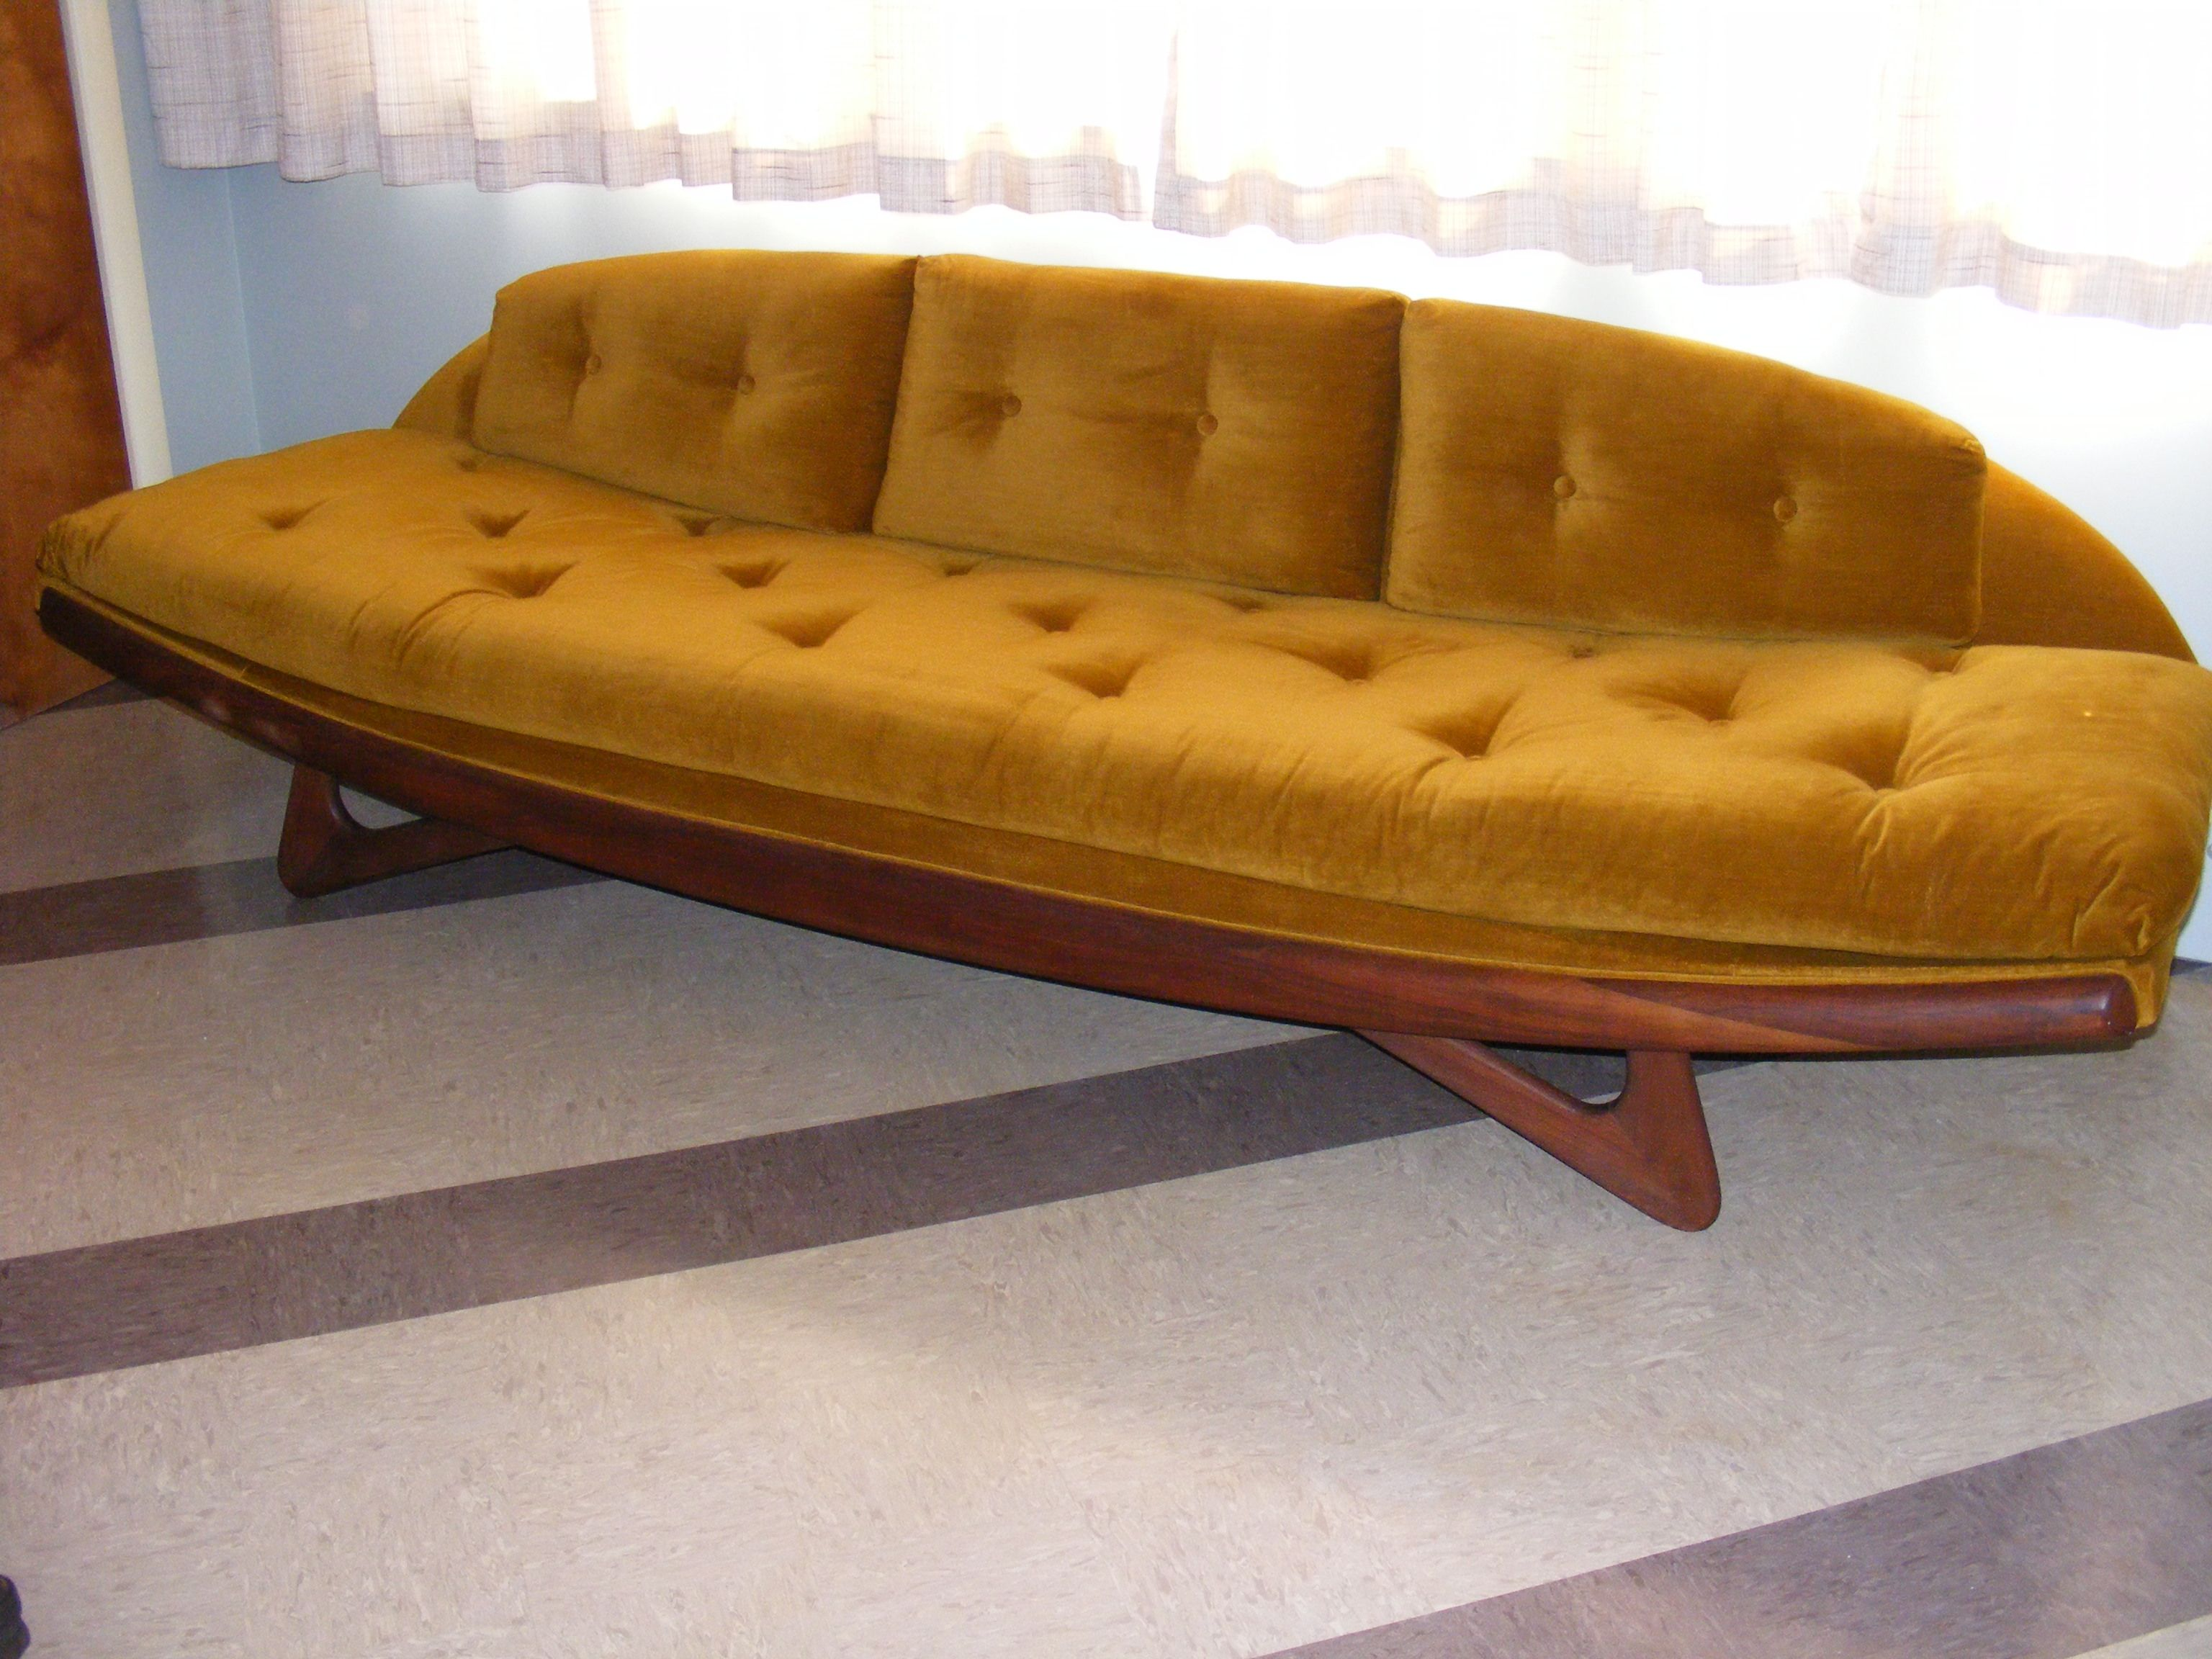 Couches For 1940s 1950s Or 1960s Living Rooms Upload Photos Of Your Sofa Retro Renovation Vintage Sofa Retro Sofa Retro Couch